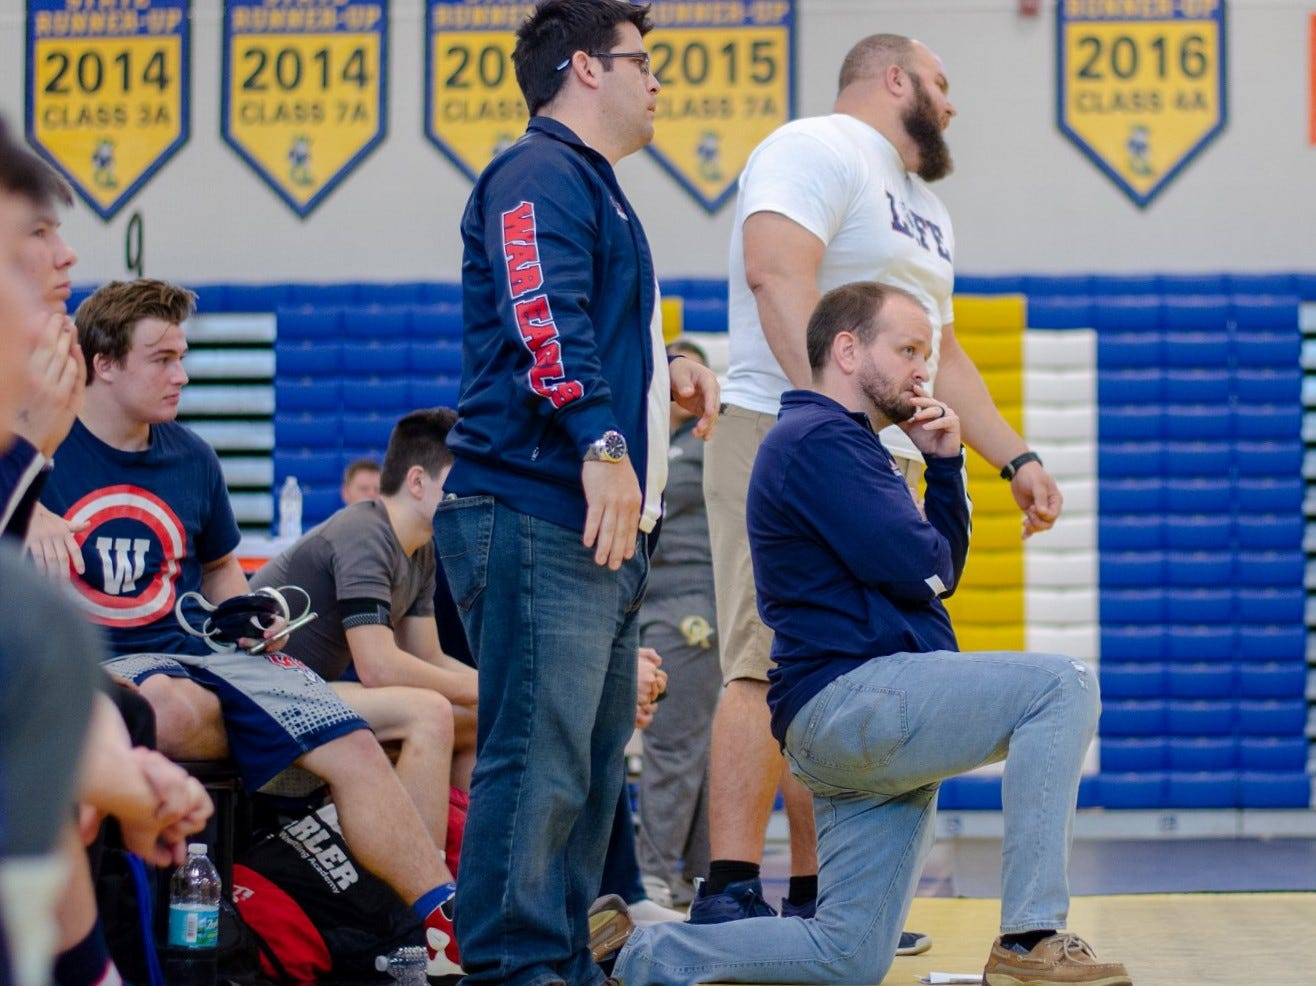 Wakulla wrestling coach Will Pafford watches as his wrestling beat Lemon Bay on Saturday in Kissimmee, advancing to the state championship match of the FHSAA Wrestling Dual State Championships. The War Eagles finished as state runner-up, the first time an area team has finished with a state trophy.